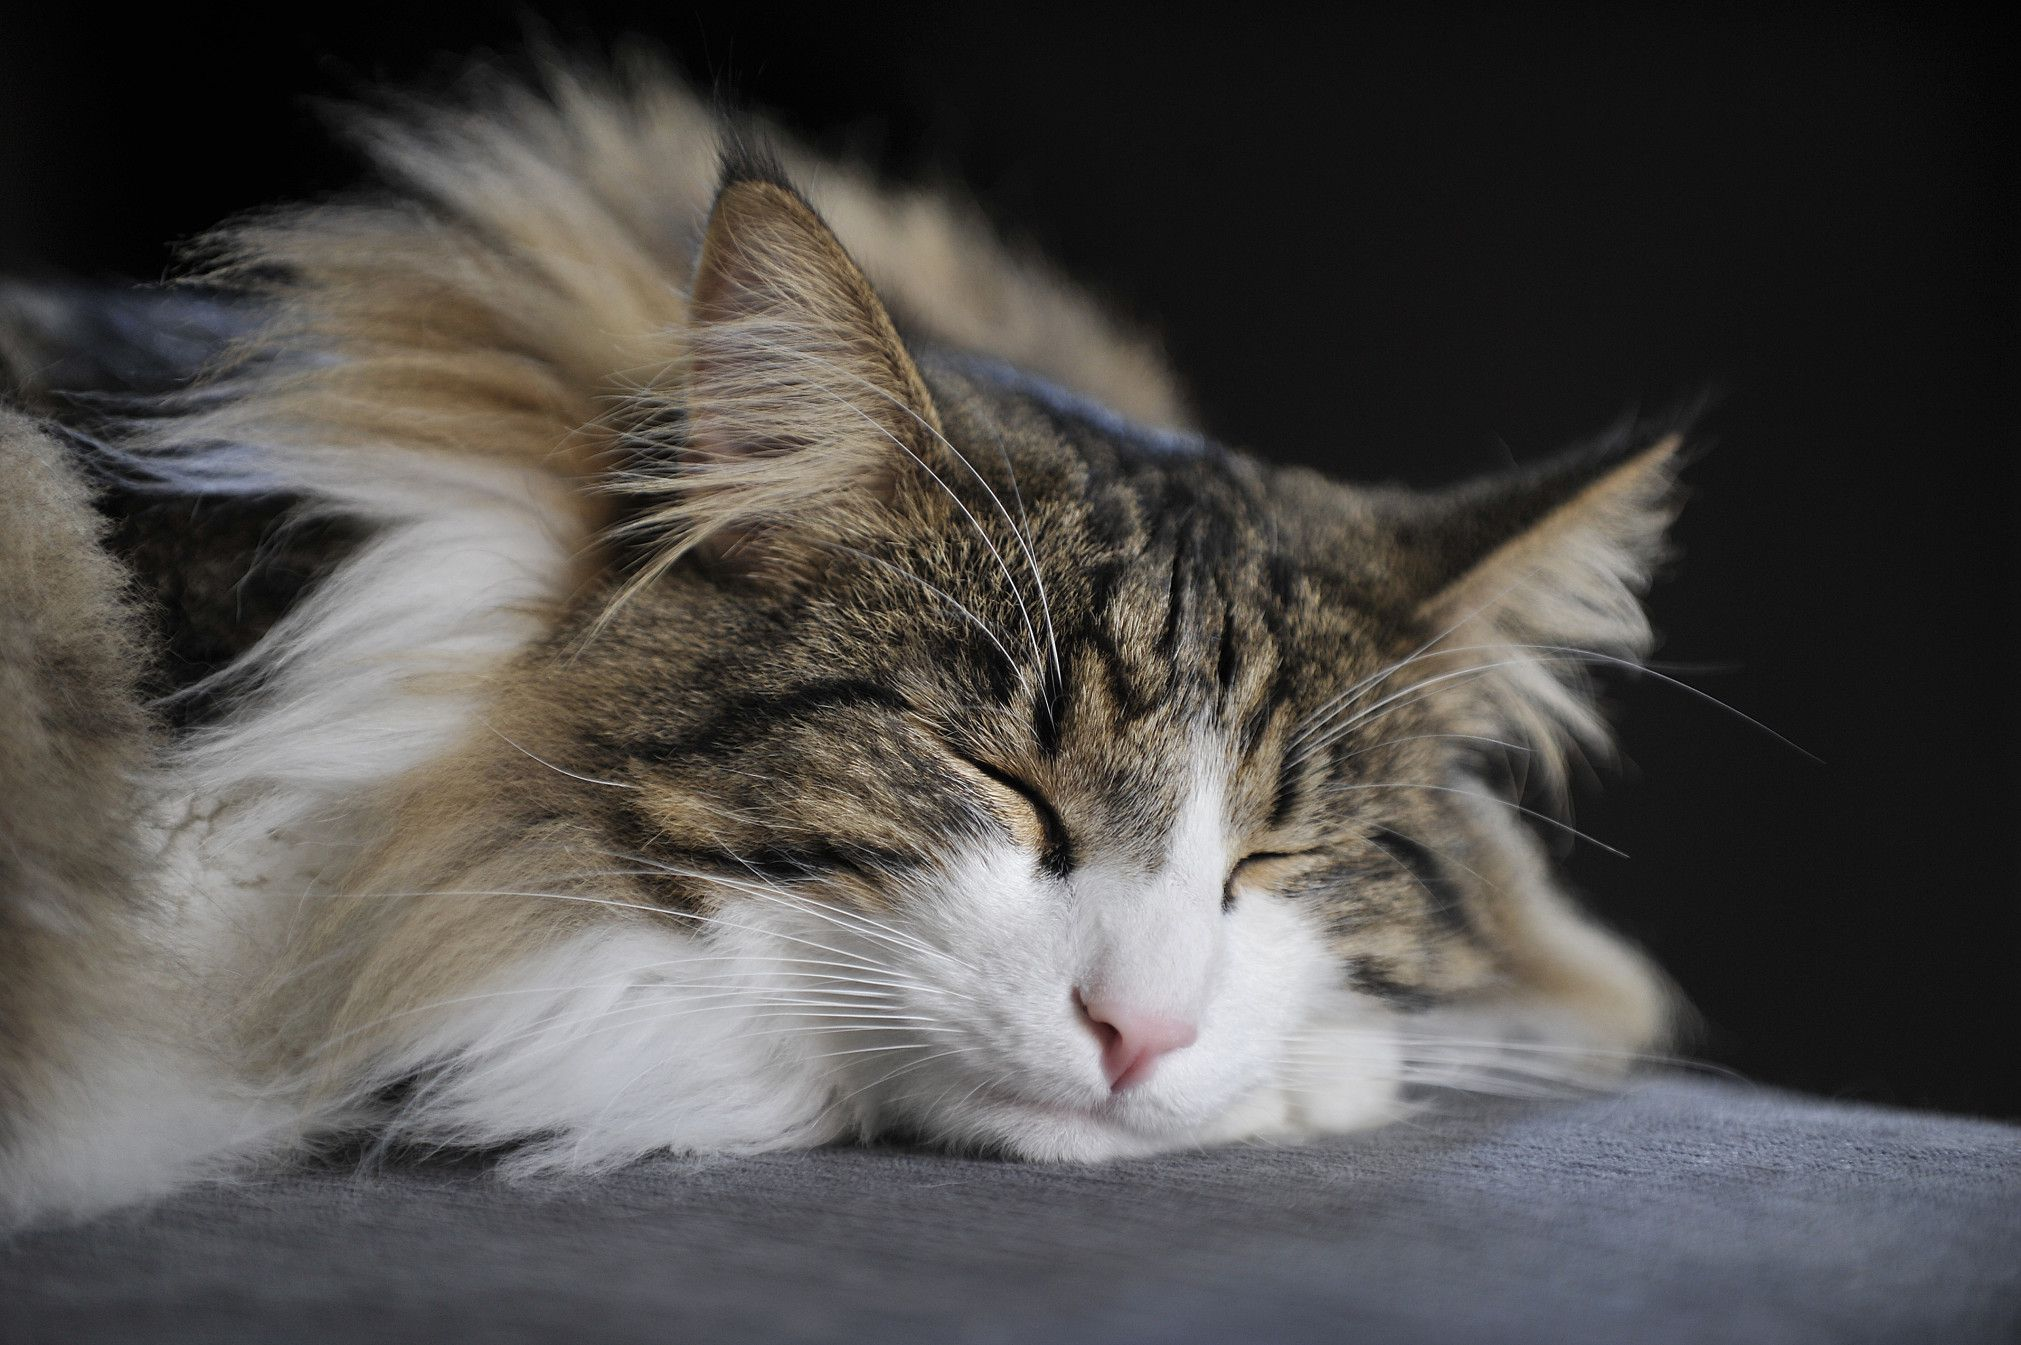 8 Pictures That Prove Norwegian Forest Cats Are the Most Beautiful